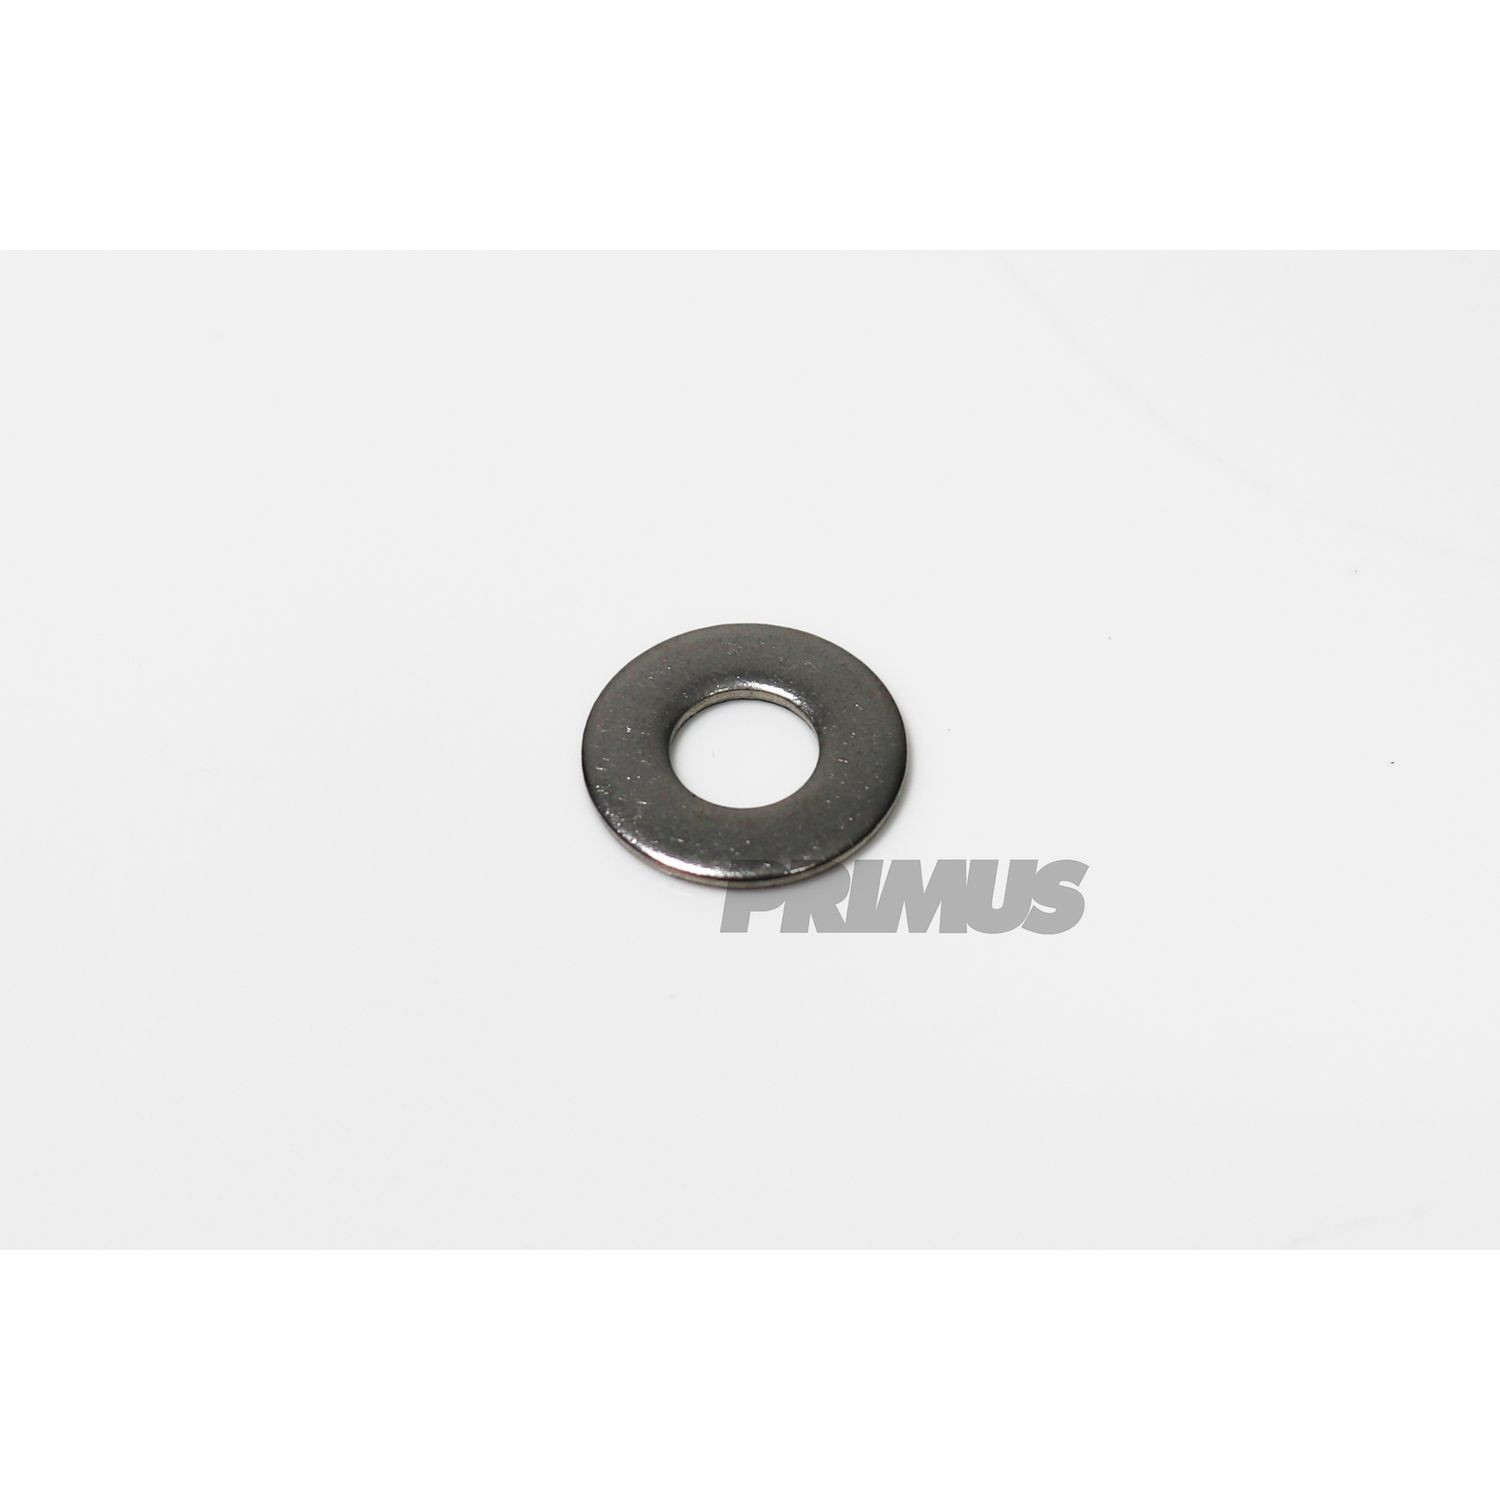 "1/4"" STAINLESS STEEL FLAT WASHER"